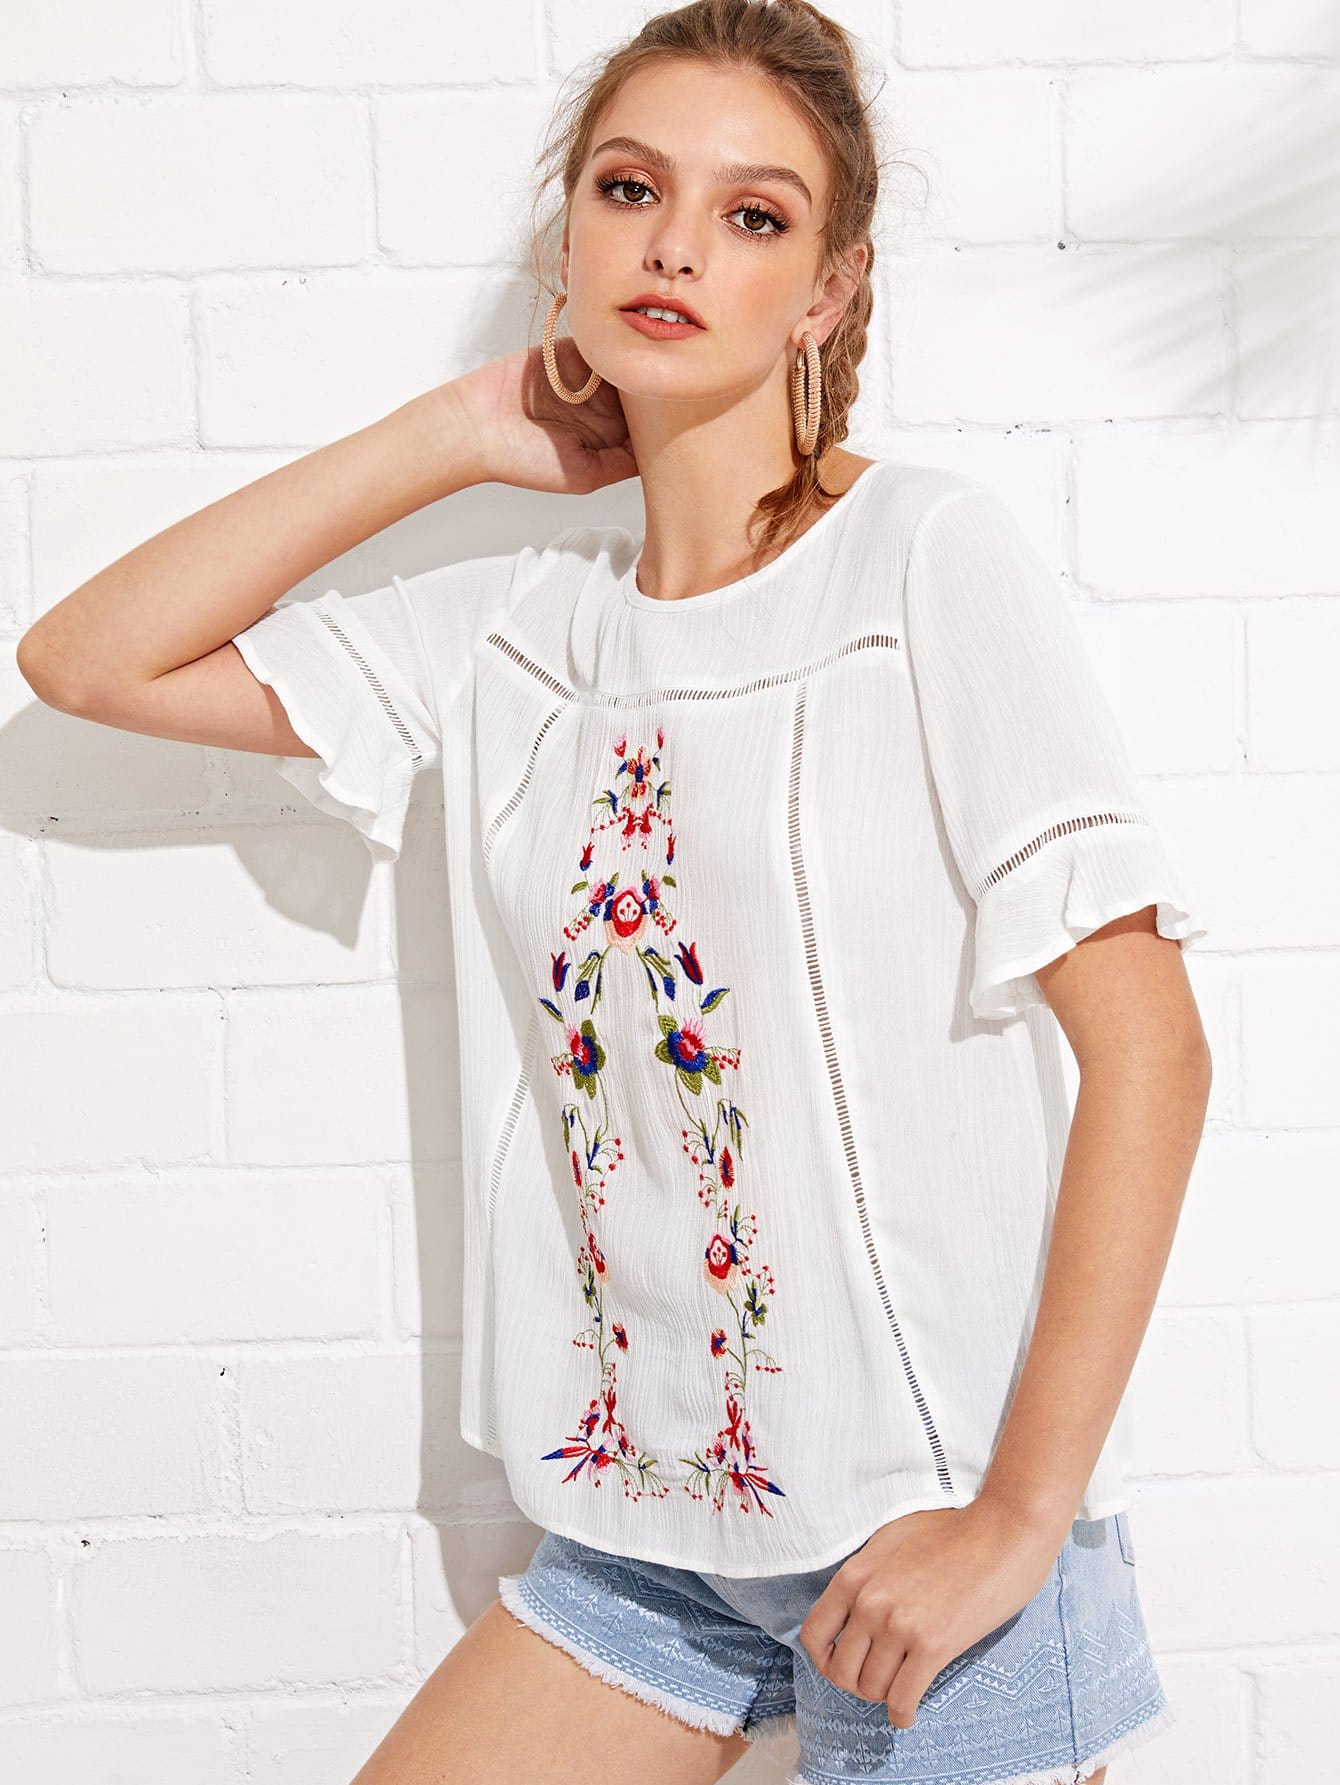 Flower Embroidered Cut Out Detail Top metal flower embroidered detail handbag